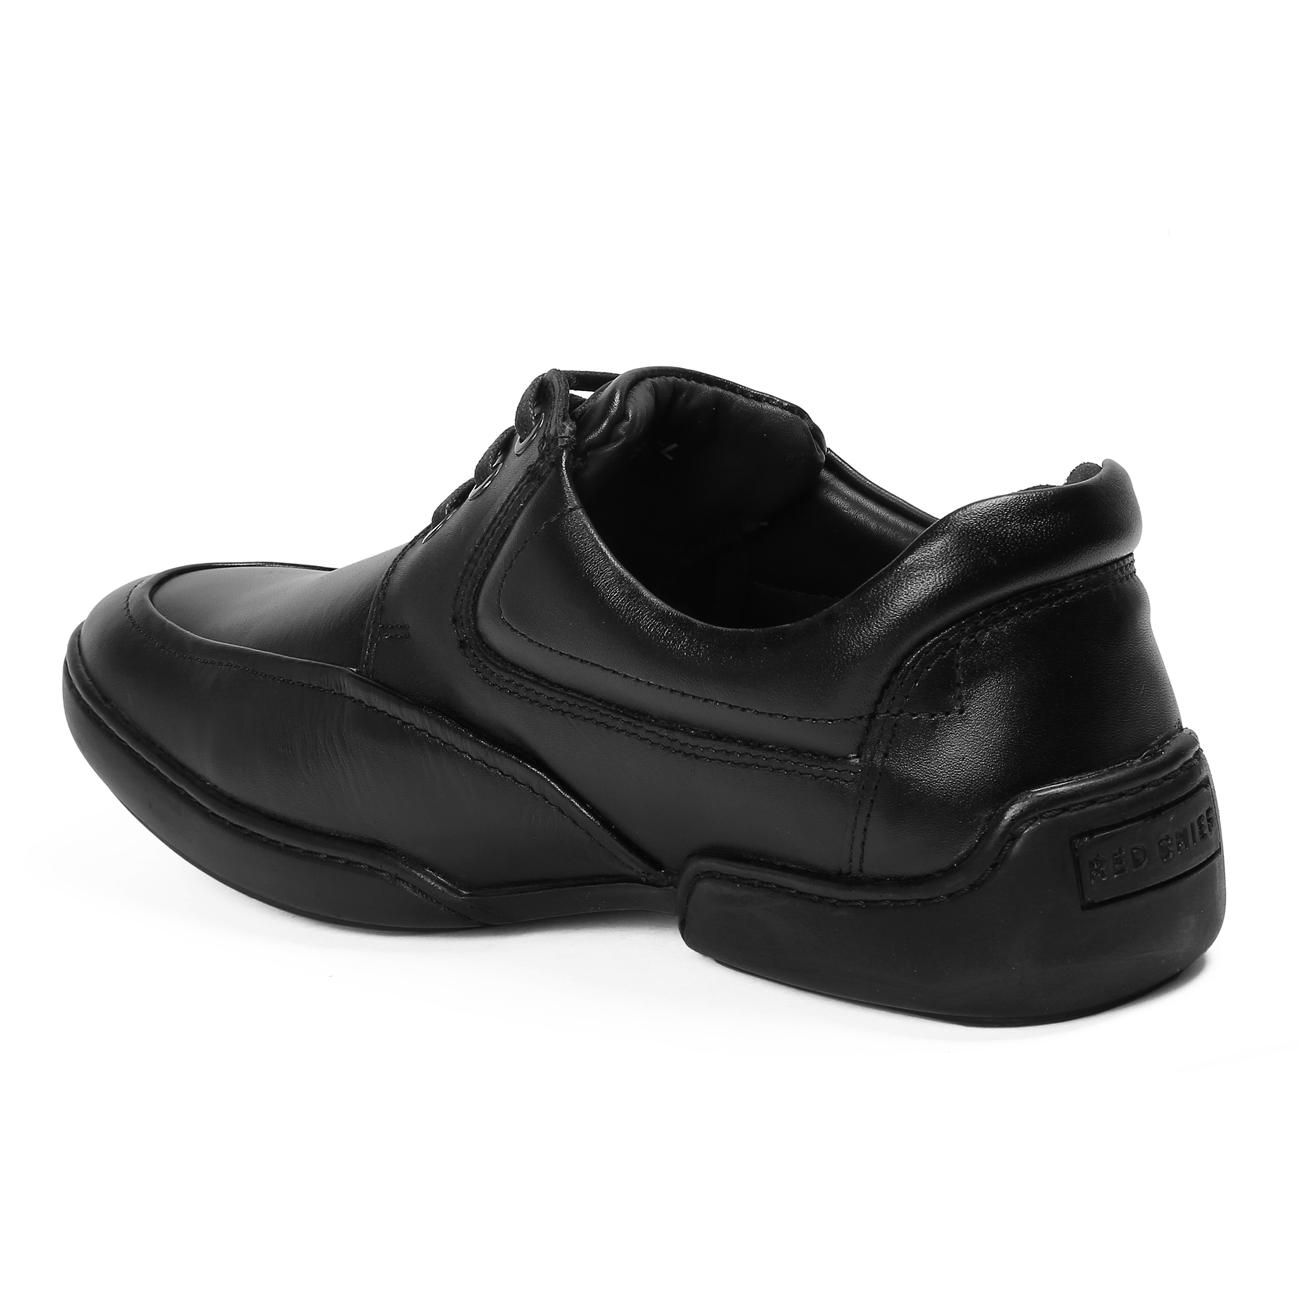 black casual leather shoes from behind